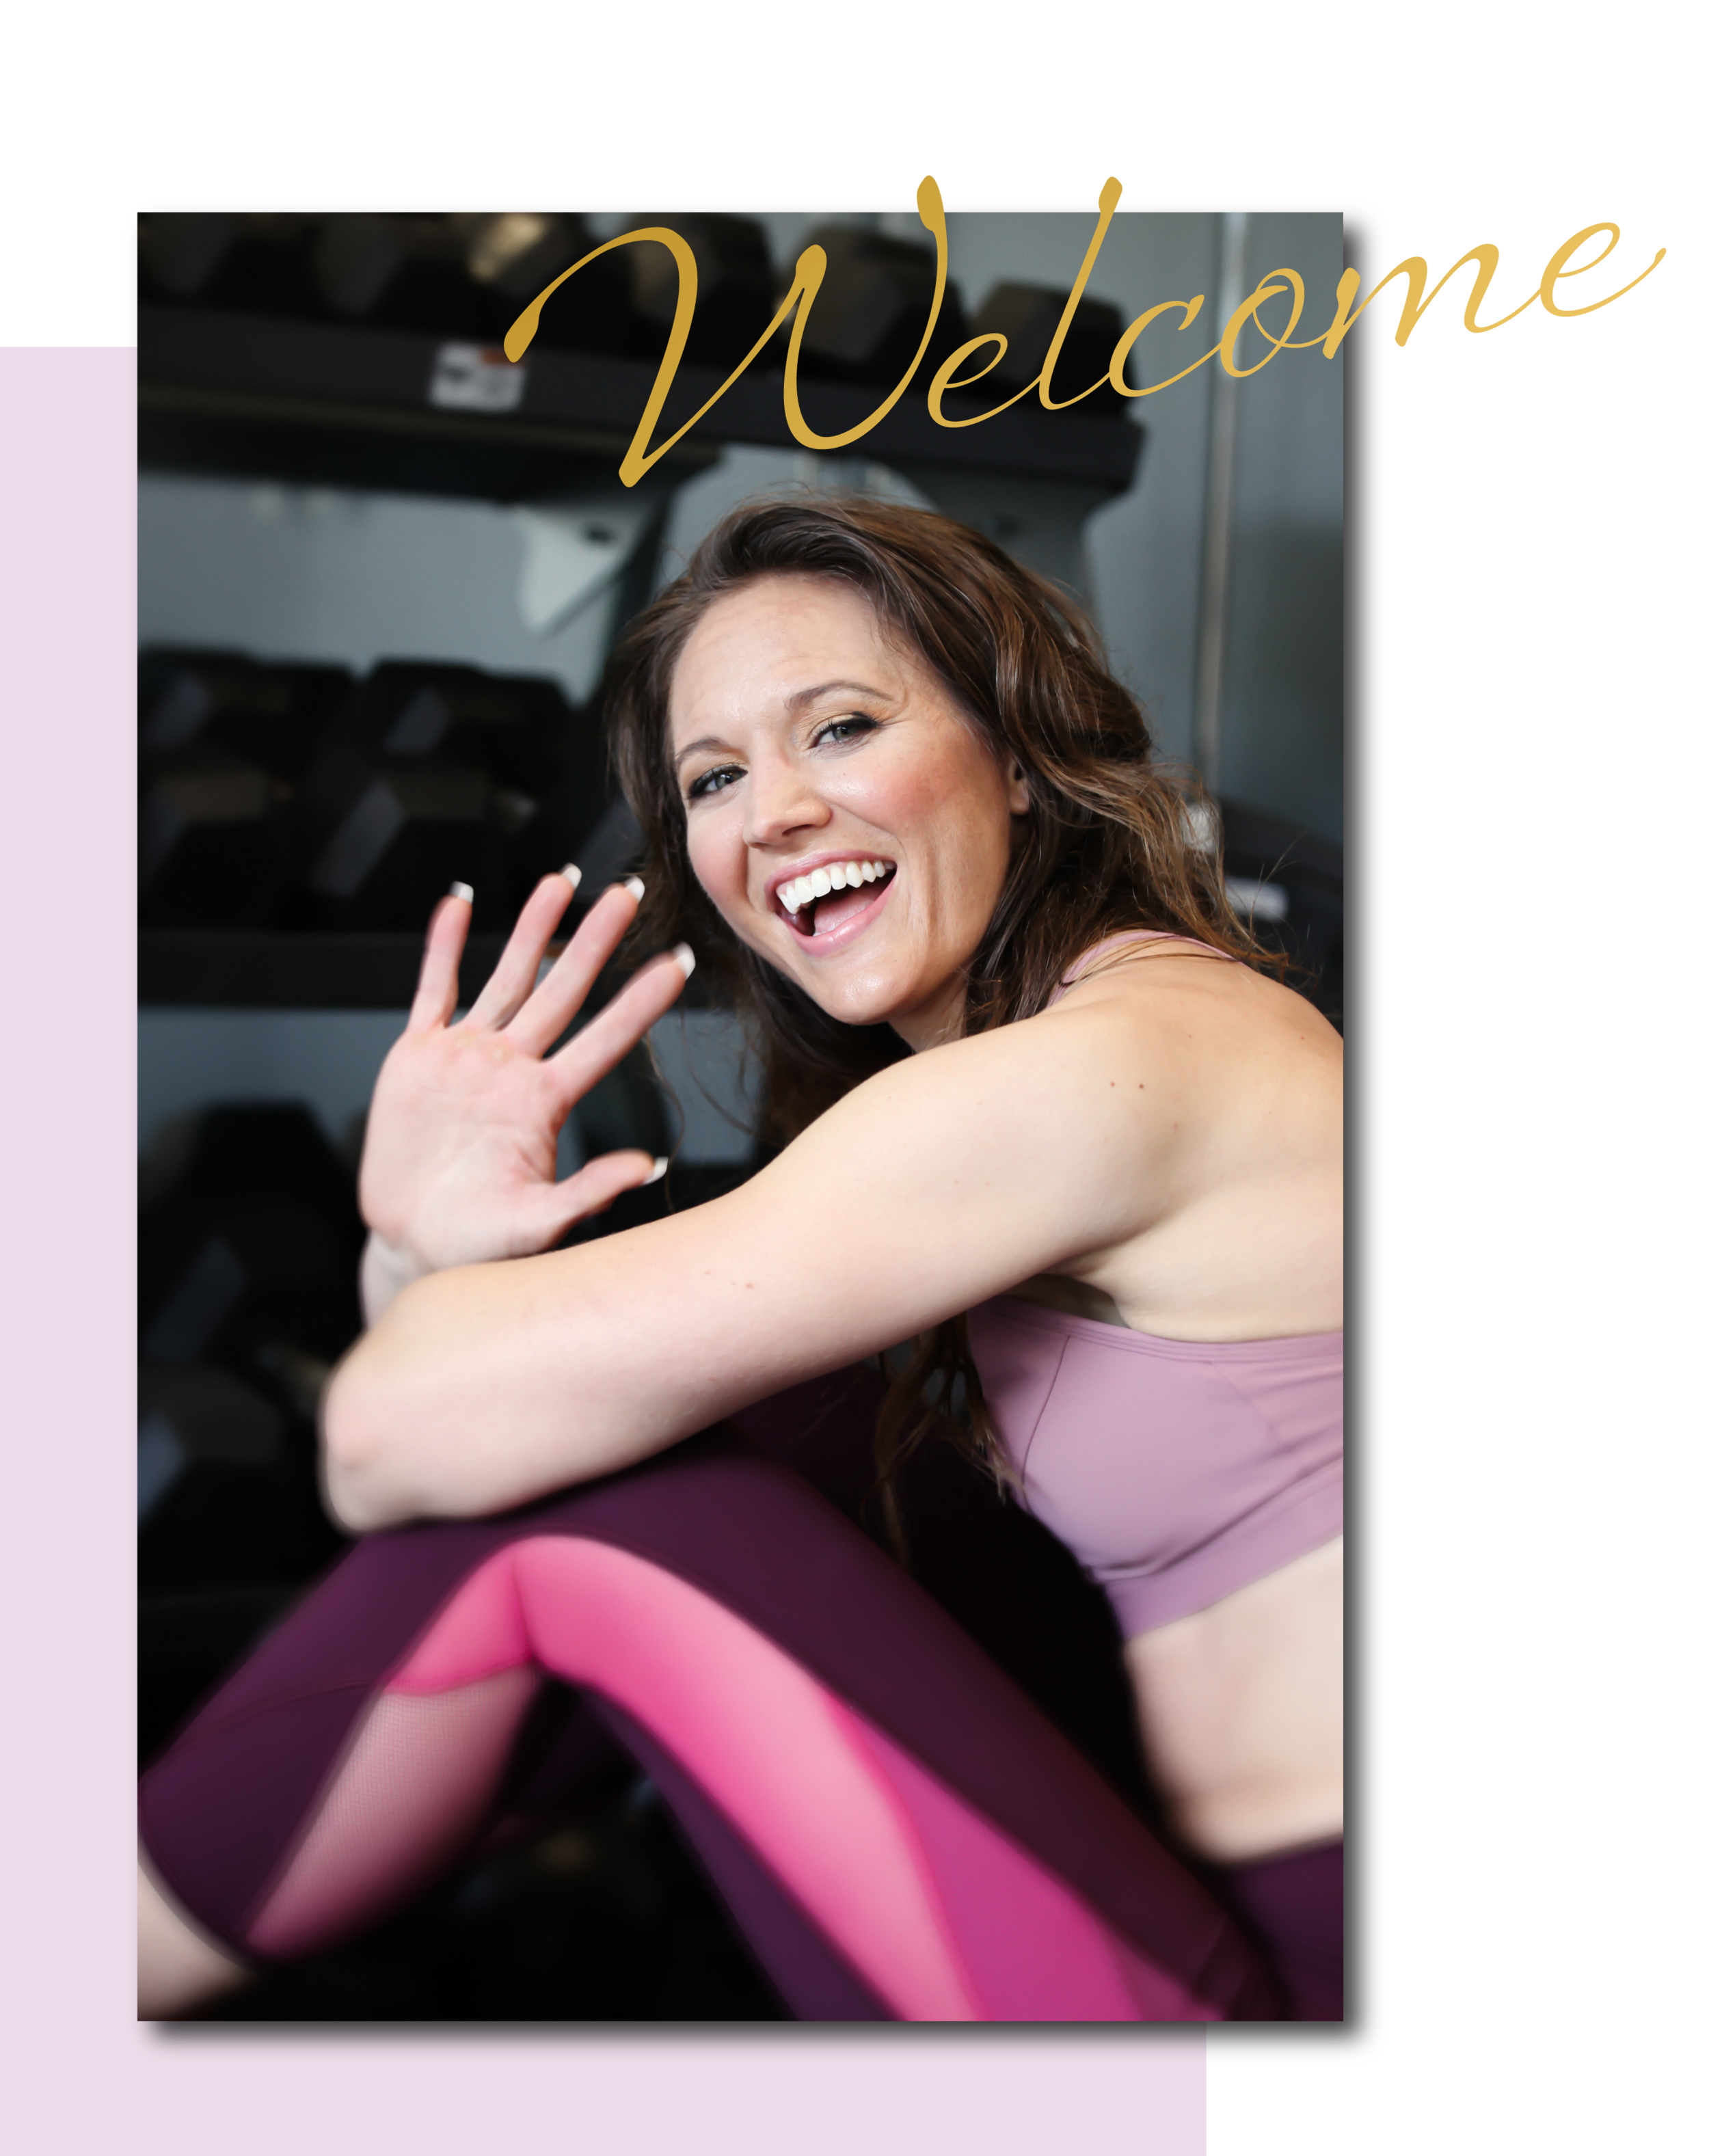 Hi, I'm Liz! - I'm The Personal Trainer For Your Love Life!I help women become the most powerful and irresistible version of themselves in the shortest time possible! As a personal trainer for 18 years, people came to me to get to their physical results faster. They didn't want to have to figure it out themselves and go through a ton of trial and error, just to have the body that they wanted. I do the same thing for women in their love lives. I've gone through the trial and error and can help you get to your dream relationship with the guy you want much faster. You will be still doing the work, just like my training clients had to workout, but you will be doing the things that work best and fastest for you to get where you want to be in your love life.